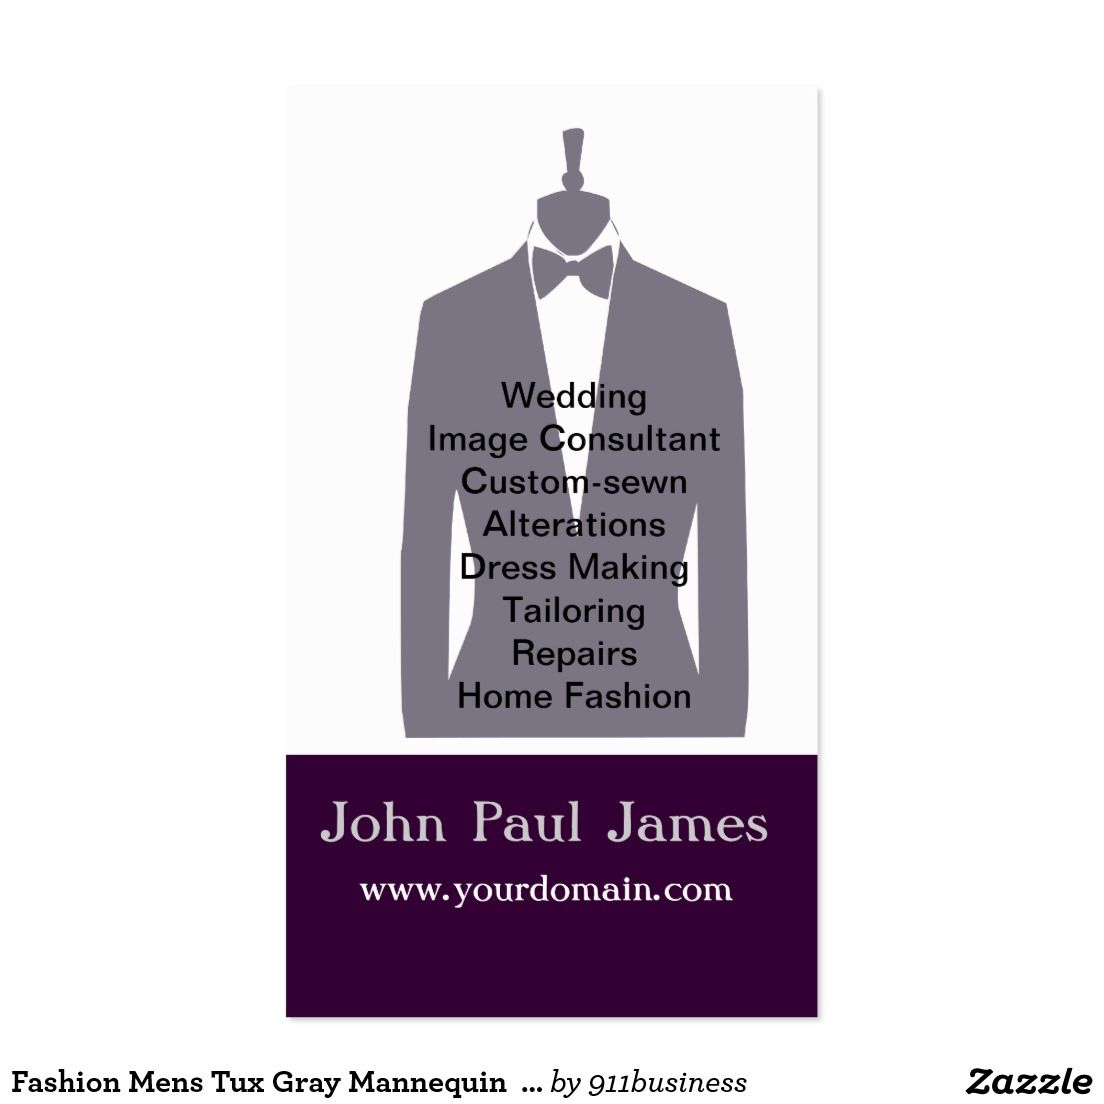 Fashion Mens Tux Gray Mannequin Stylist Business Card Zazzle Com Stylist Business Cards Mens Tux Mens Designer Fashion